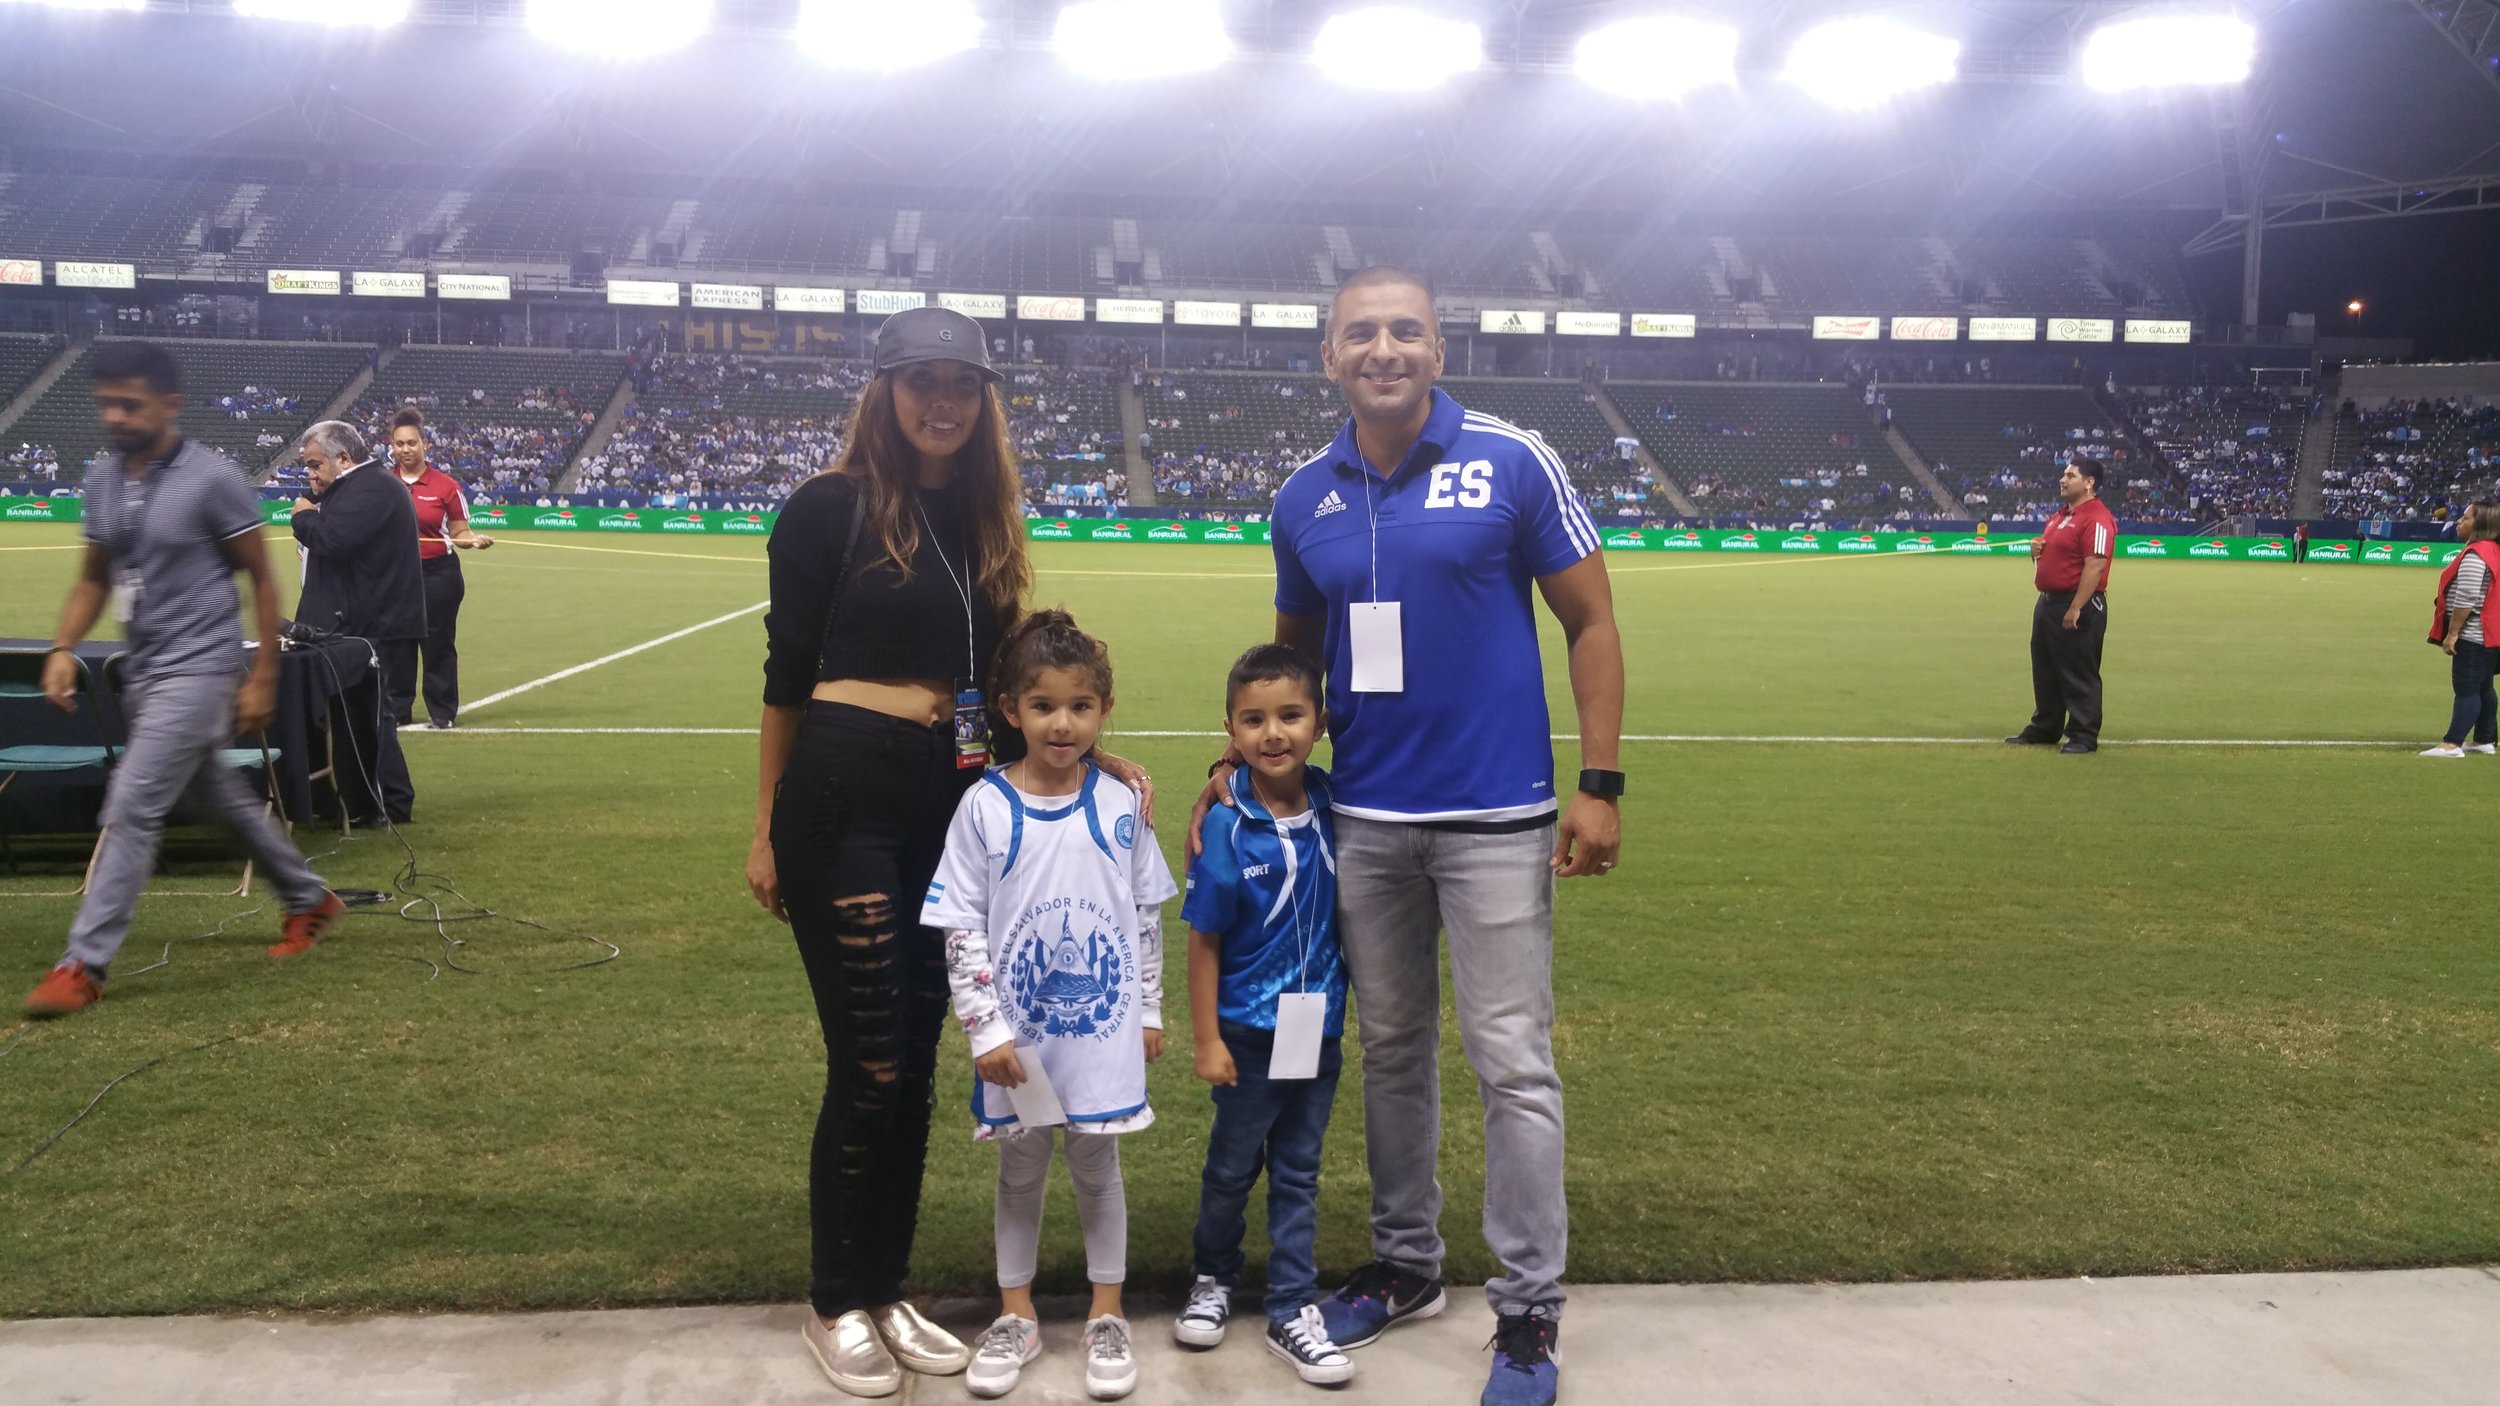 MC at El Salvador vs Quatemala Soccer Game